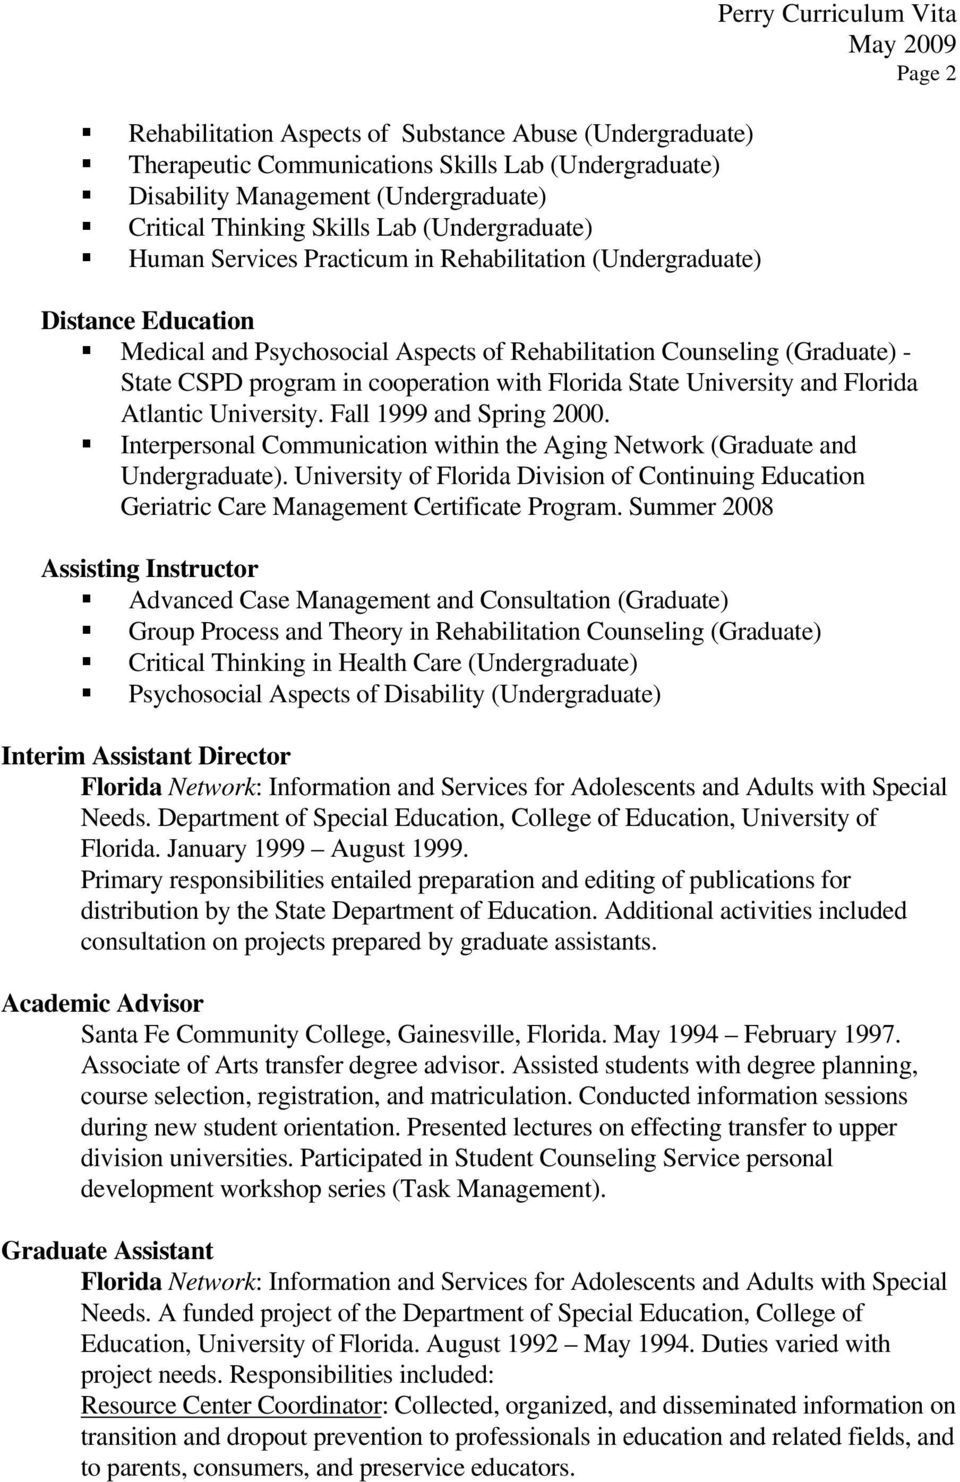 program in cooperation with Florida State University and Florida Atlantic University. Fall 1999 and Spring 2000. Interpersonal Communication within the Aging Network (Graduate and Undergraduate).